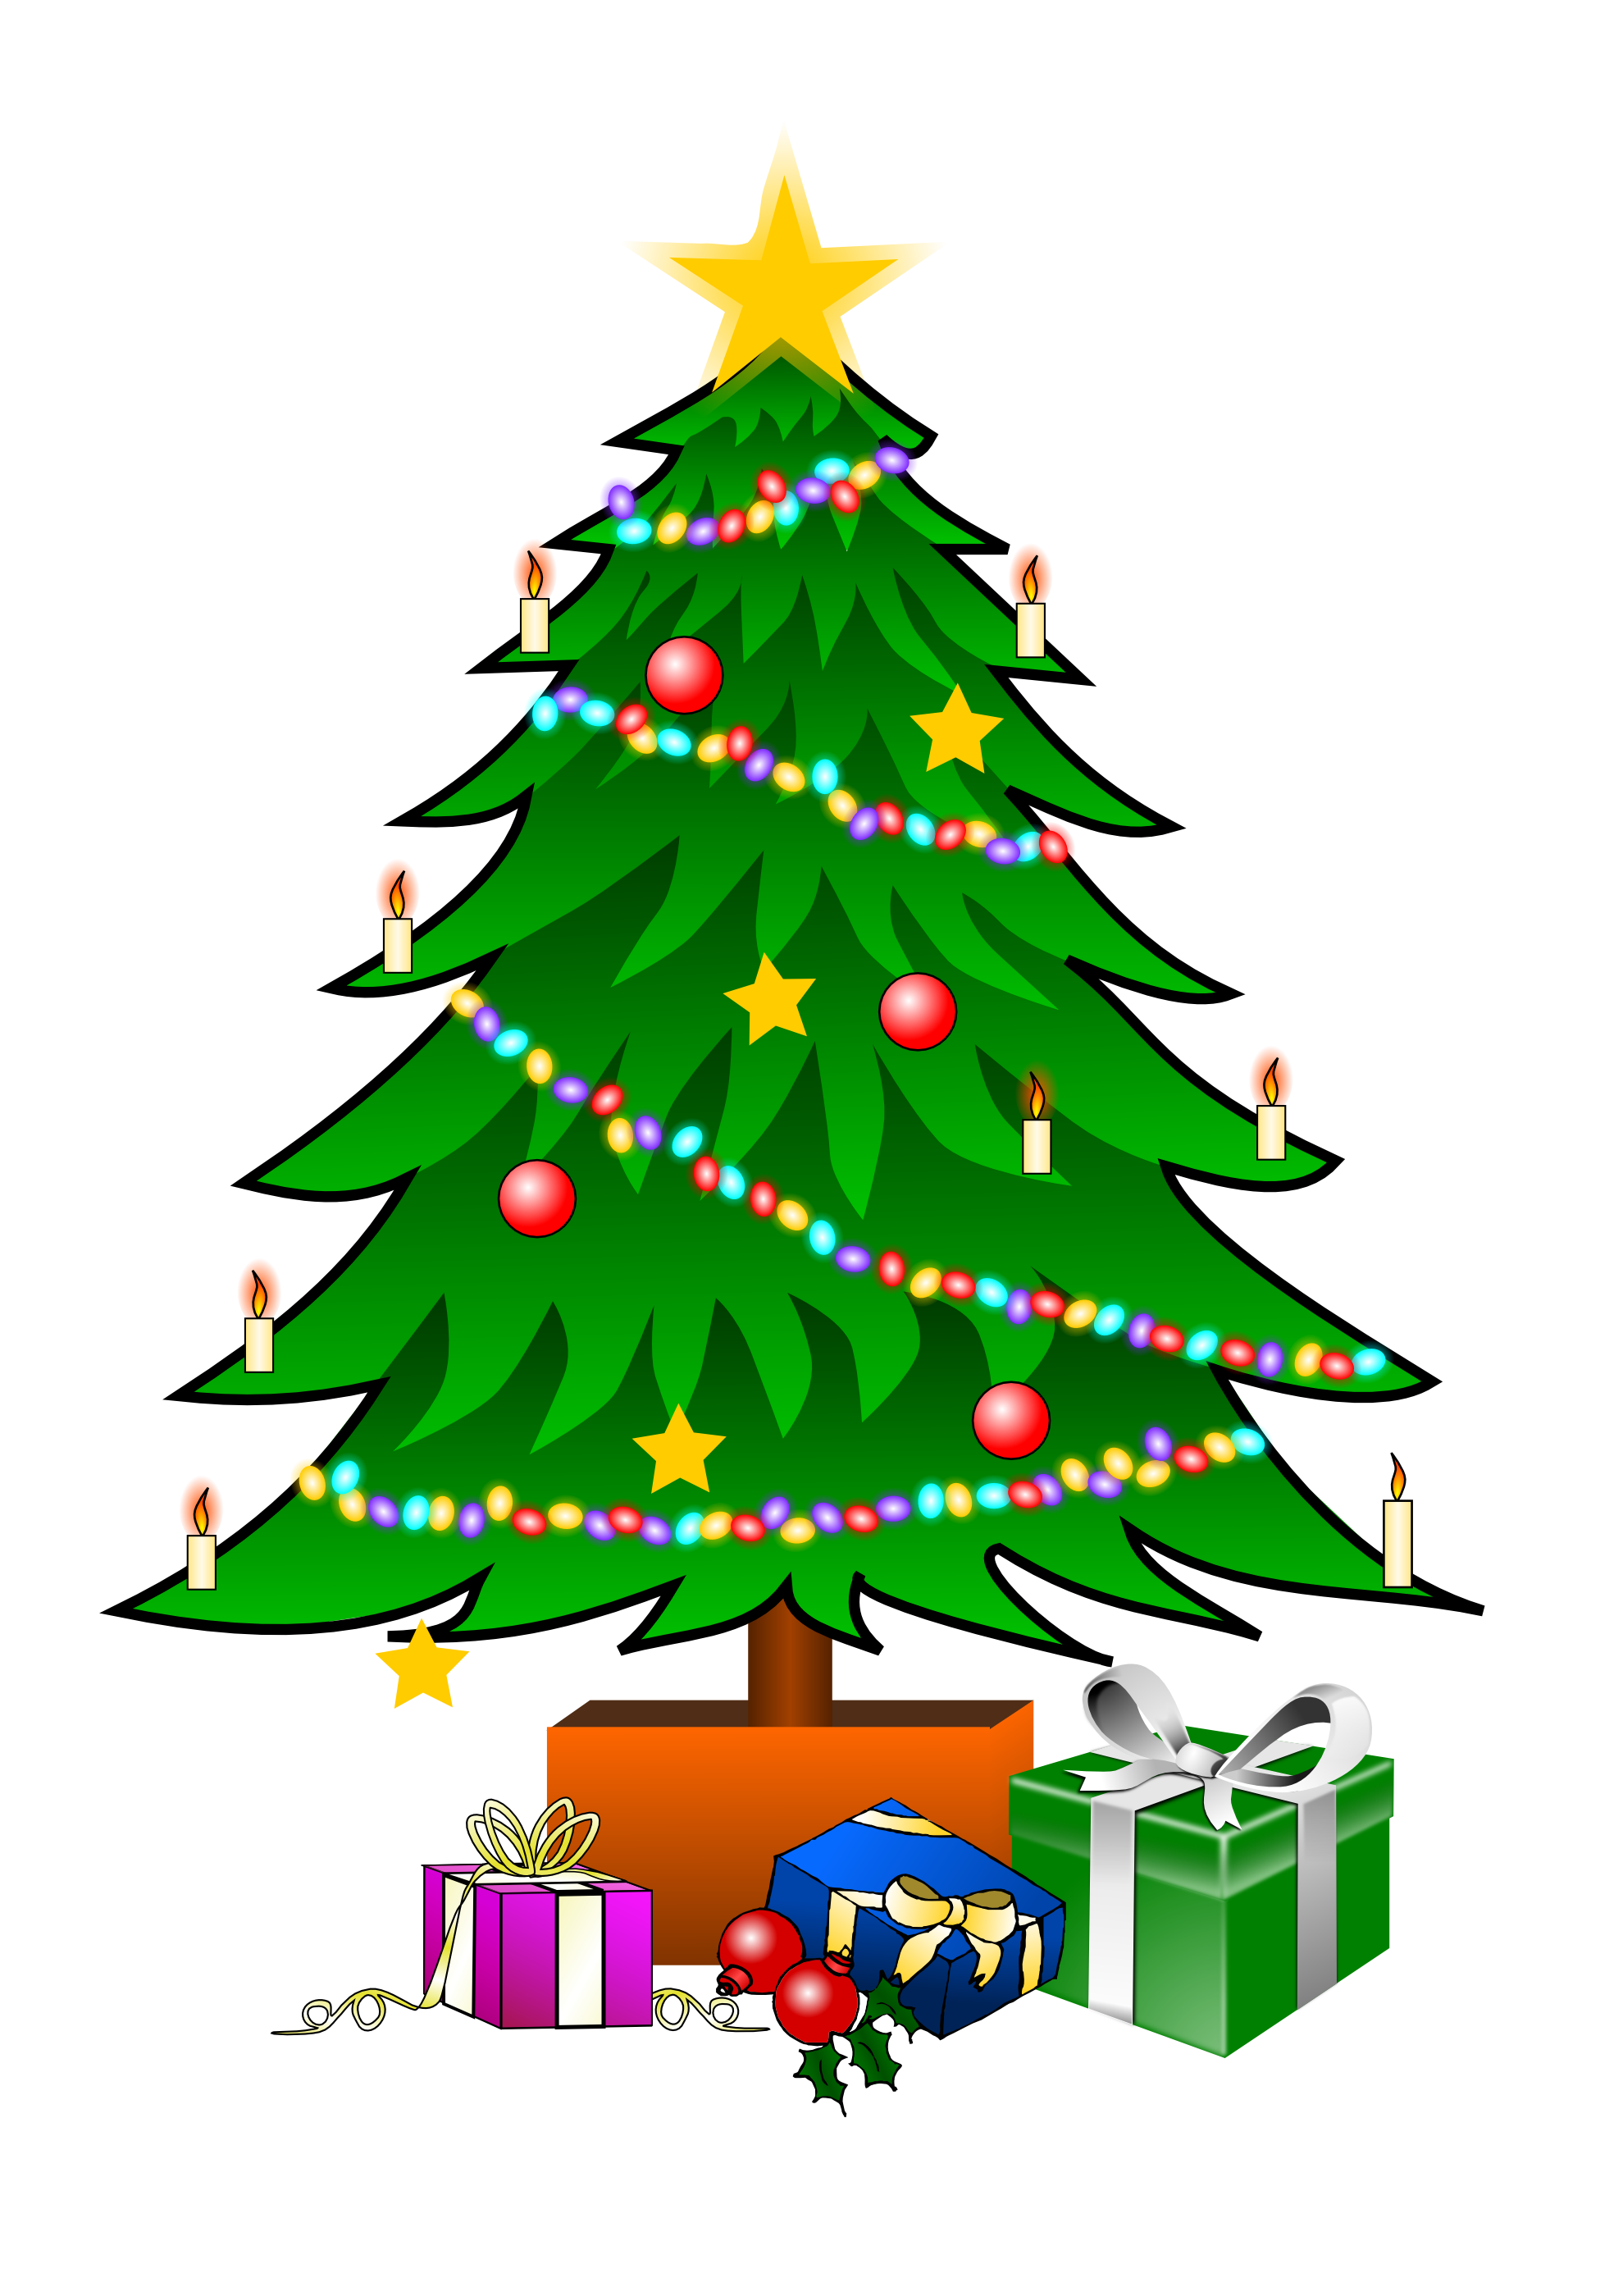 Turkey looking at christmas tree clipart picture freeuse download Christmas tree clip art is a fun way to add one of the most symbolic ... picture freeuse download